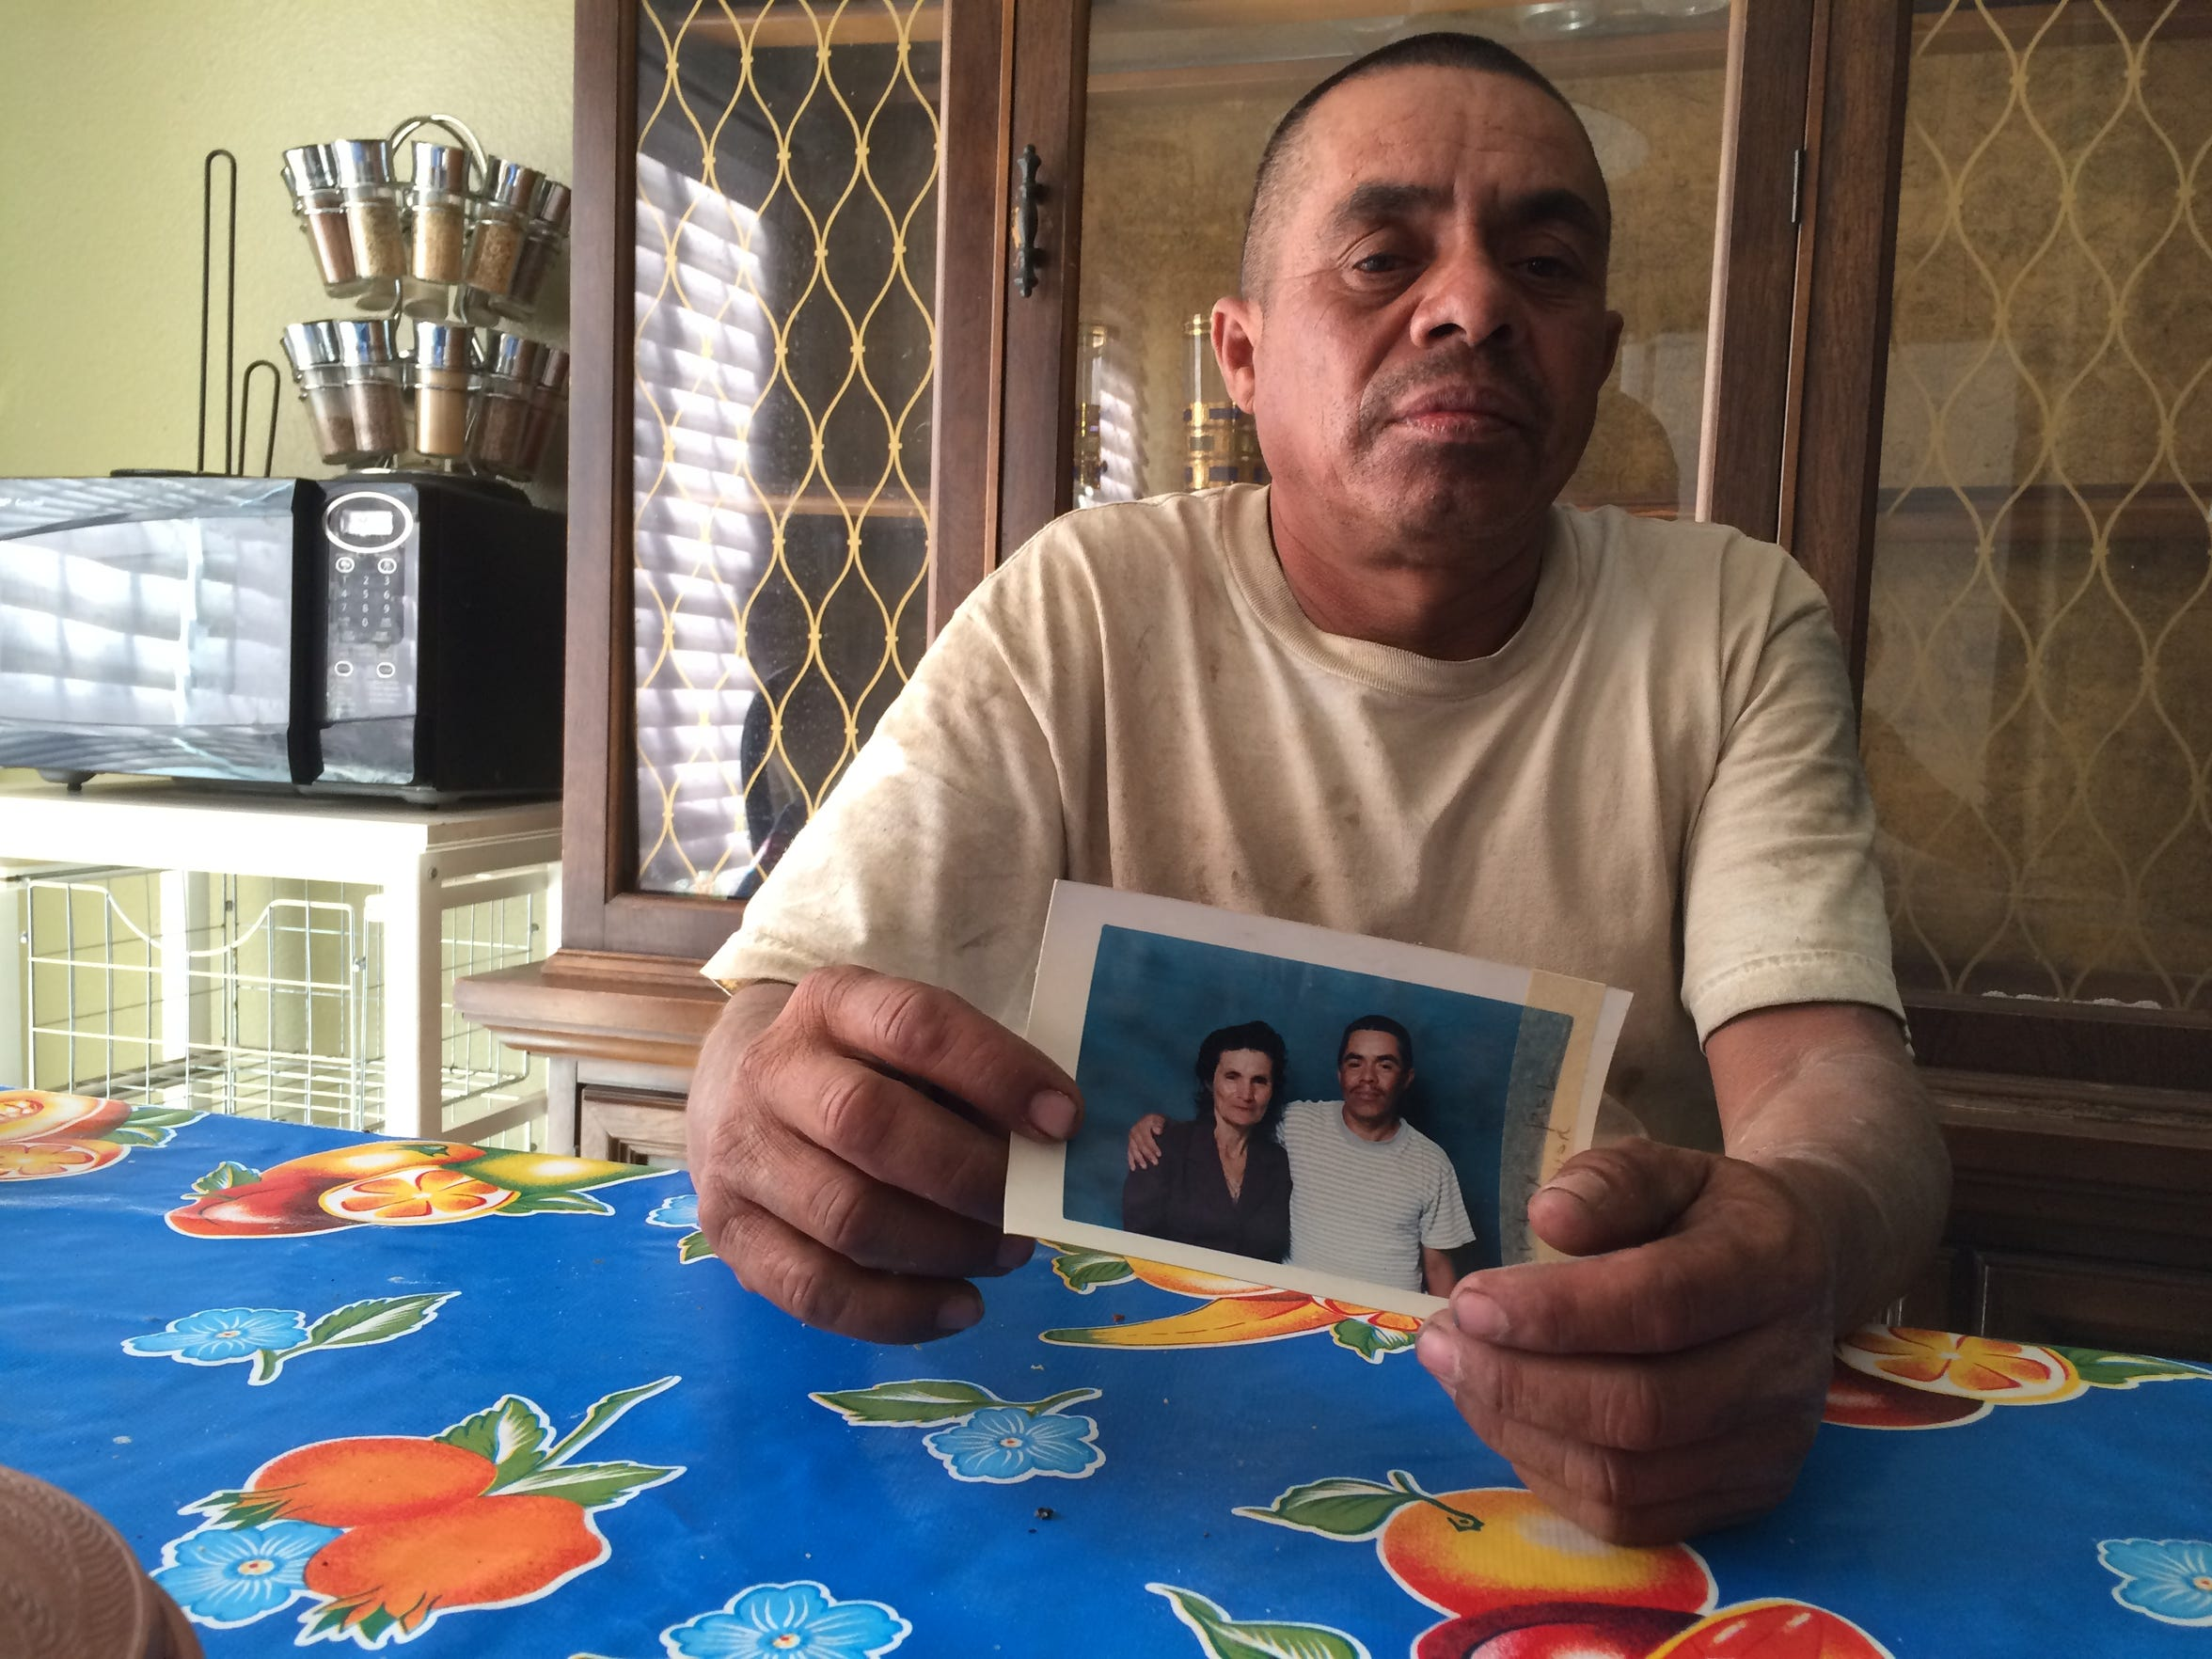 Francisco Alvarez Bautista holds a photo of him and his late mother, Maria de Jesus Bautista. Maria died from complication due to heat exposure while working in the grape fields in Thermal in 2008. Family members said the contractor failed to comply with the state's Heat Illness Prevention Regulation.